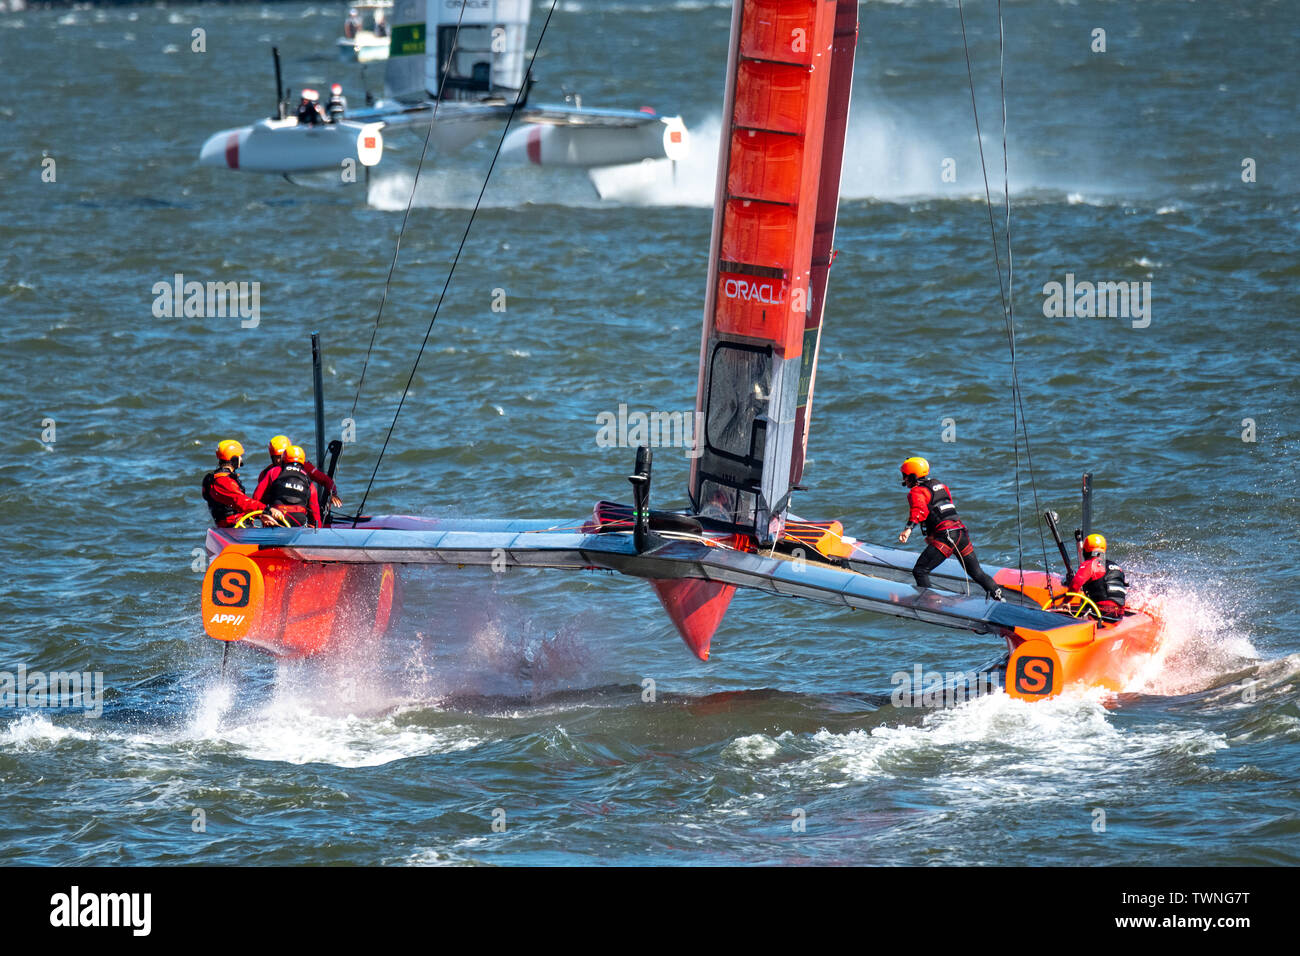 New York, USA,  21 June 2019.  China Team SailGP F50 catamaran sails in the Hudson river during the first race of day one of the SailGP event in New York City.   Credit: Enrique Shore/Alamy Live News Stock Photo